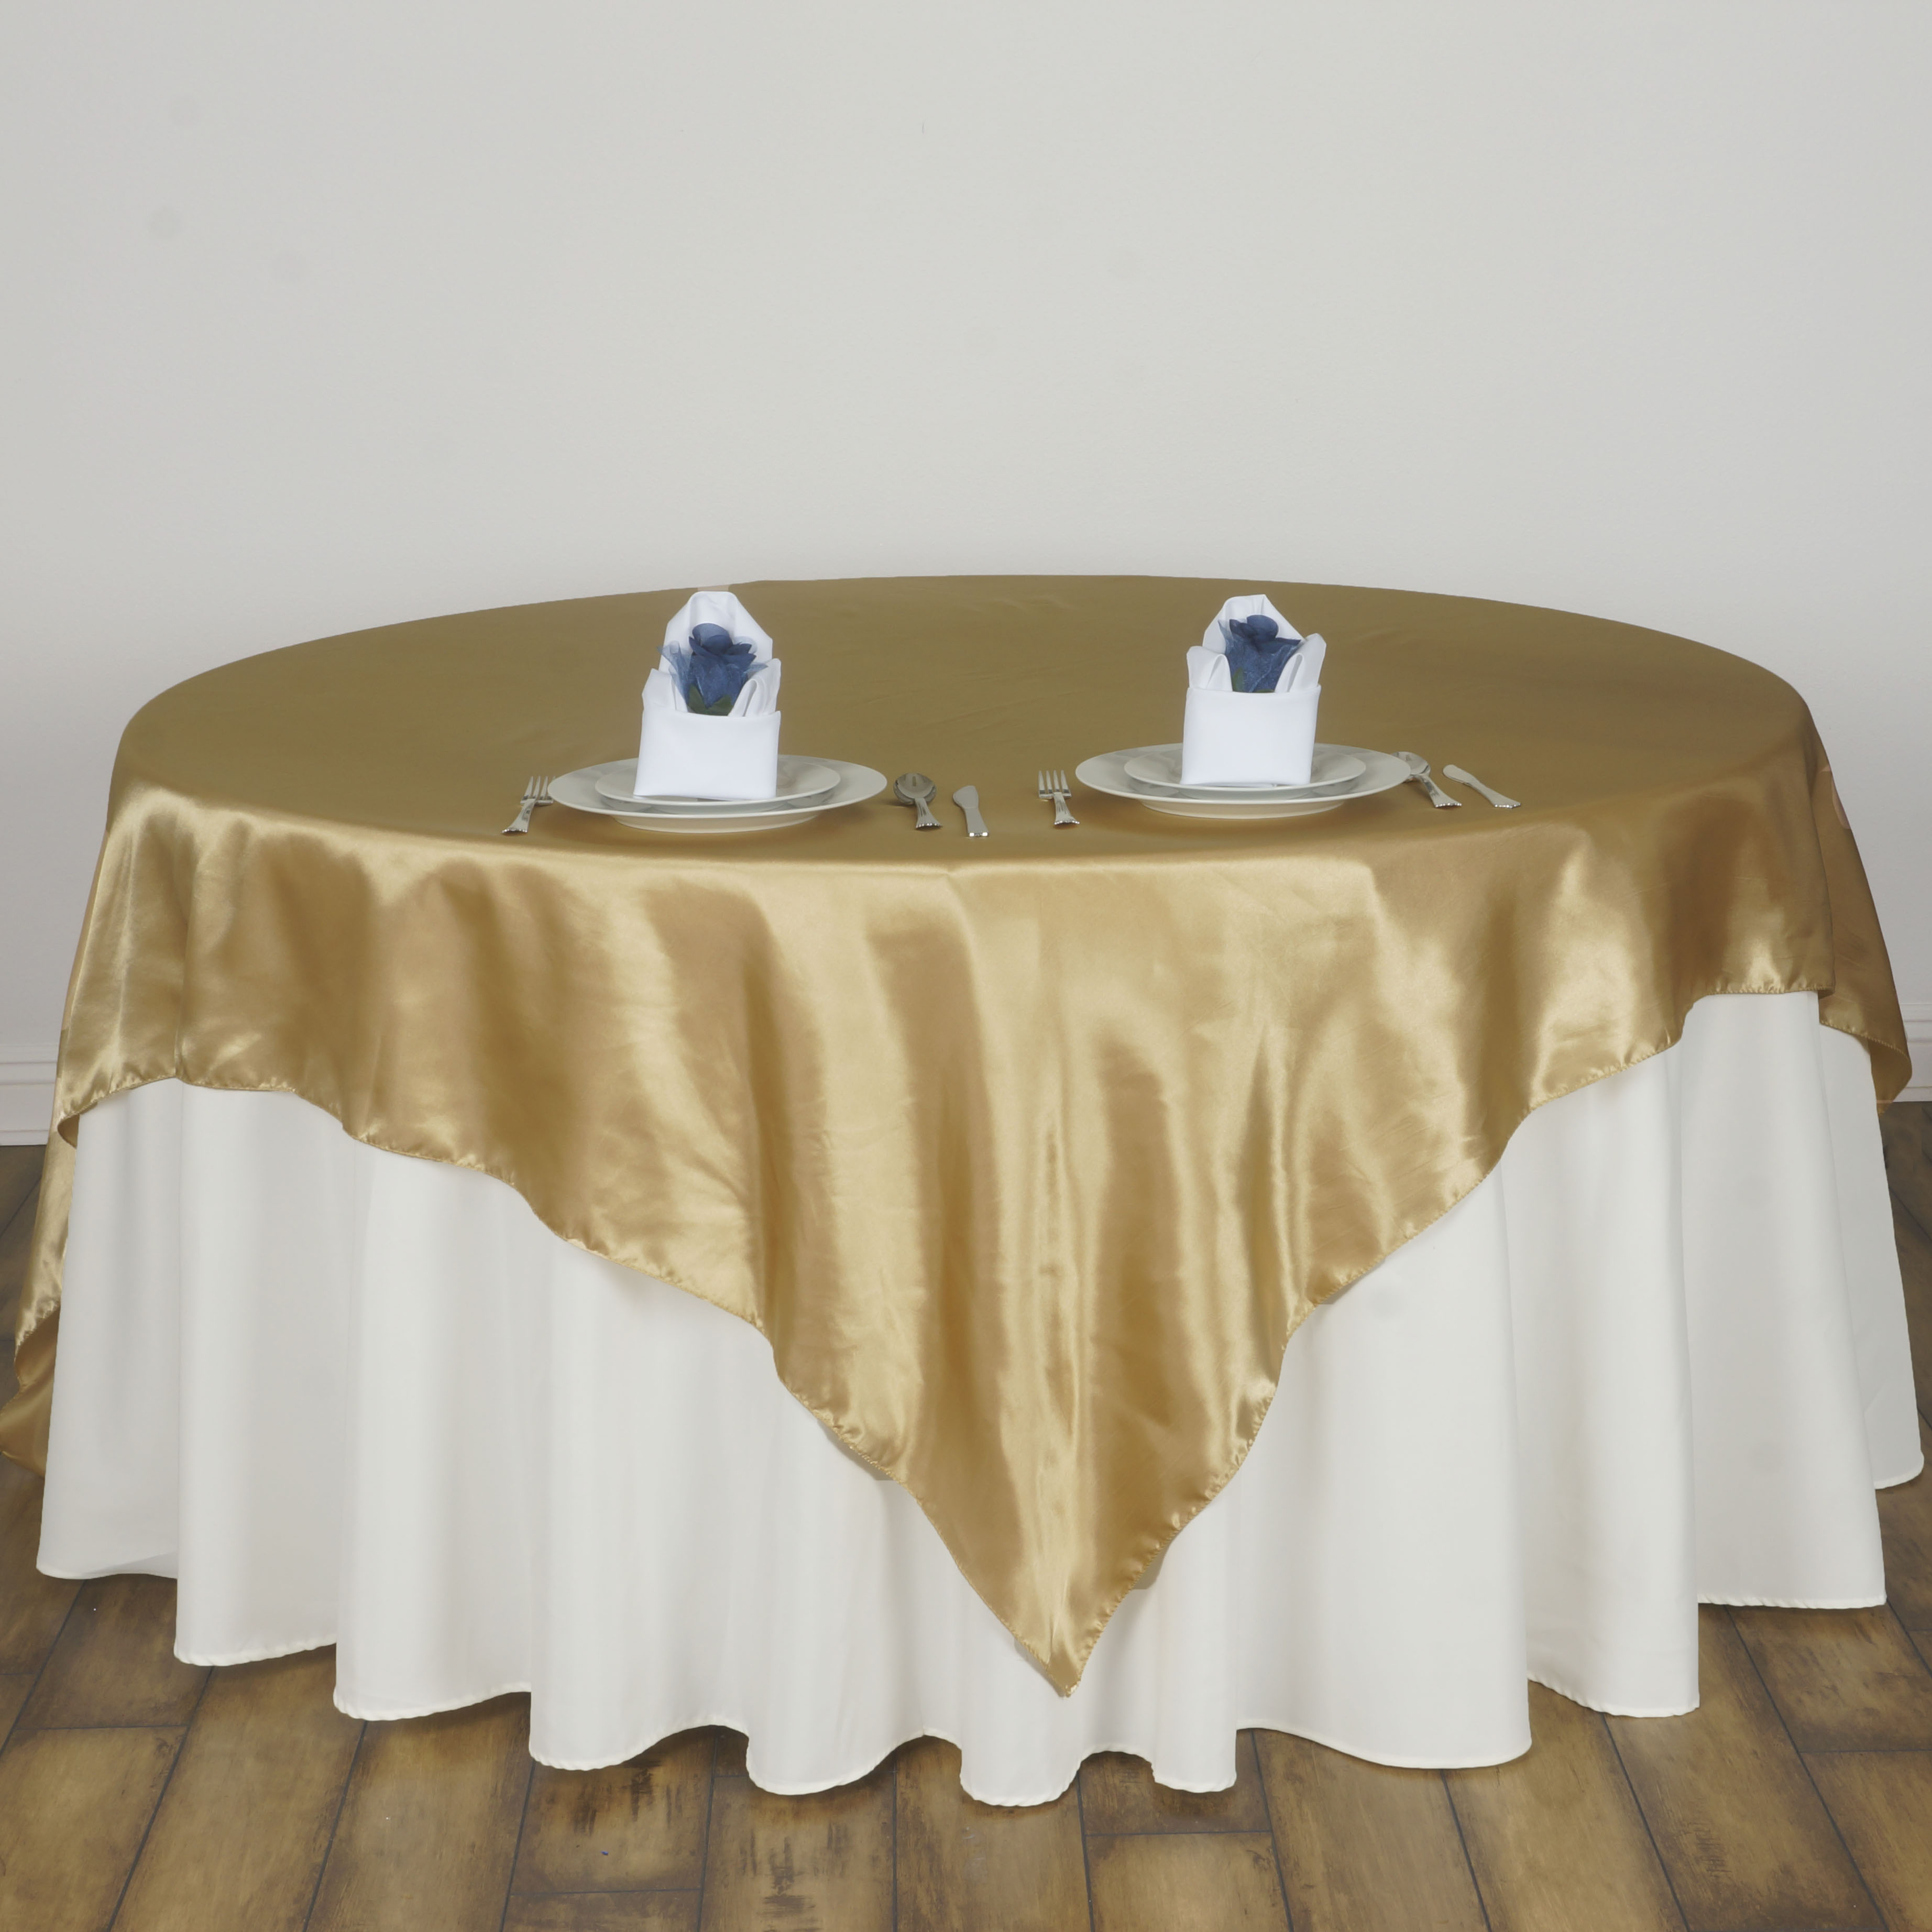 "Wedding Linen: 15 Pcs 72x72"" Square SATIN Table Overlays Wedding Linens"